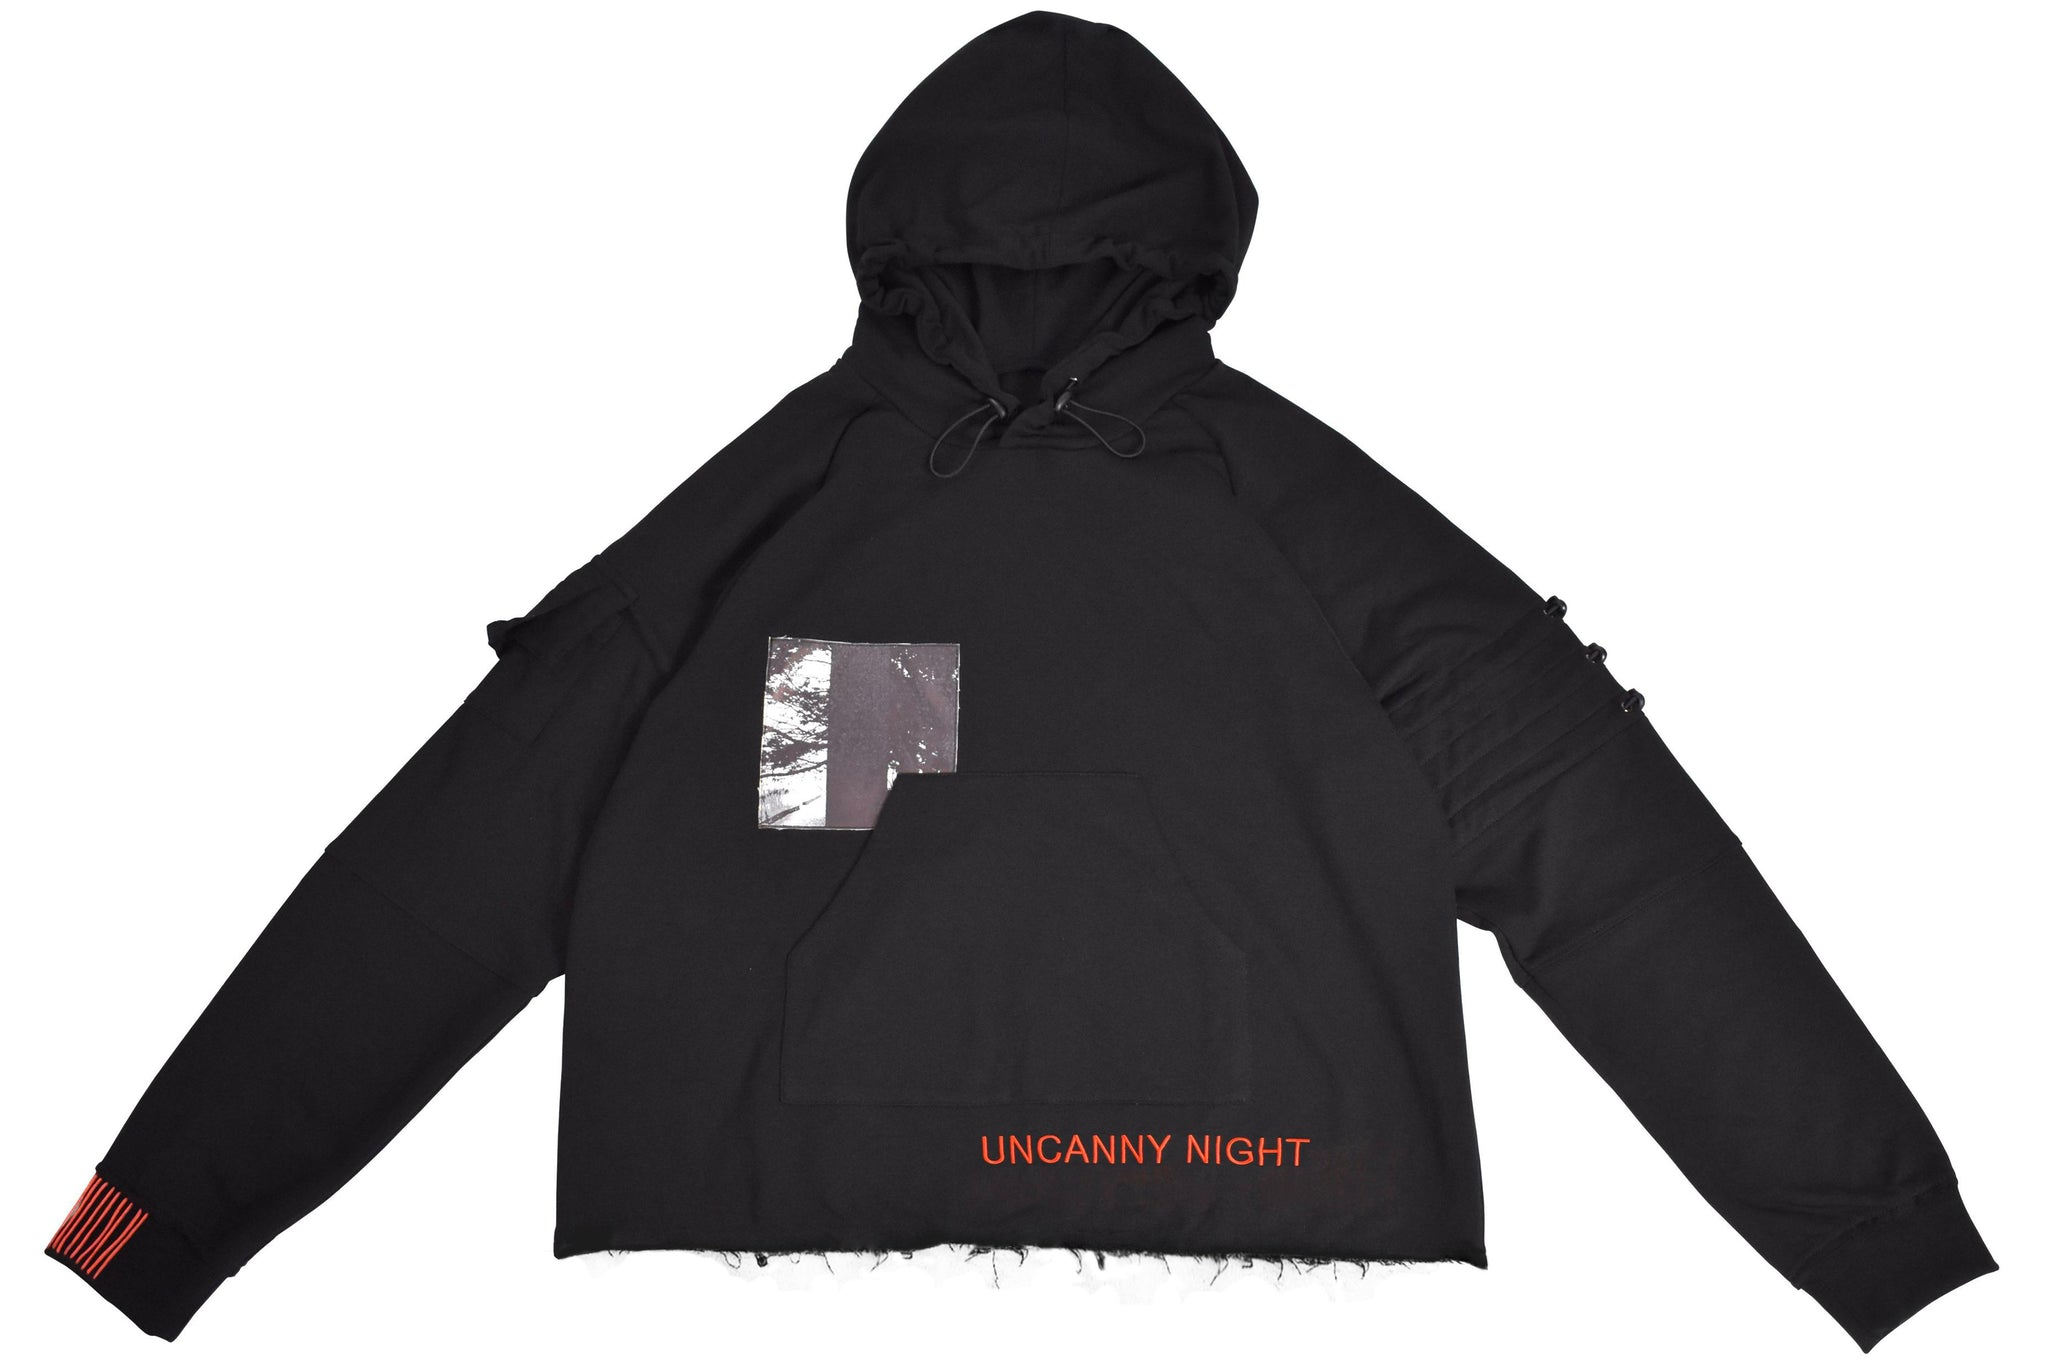 Uncanny Night Hoodie - Black FRAYED